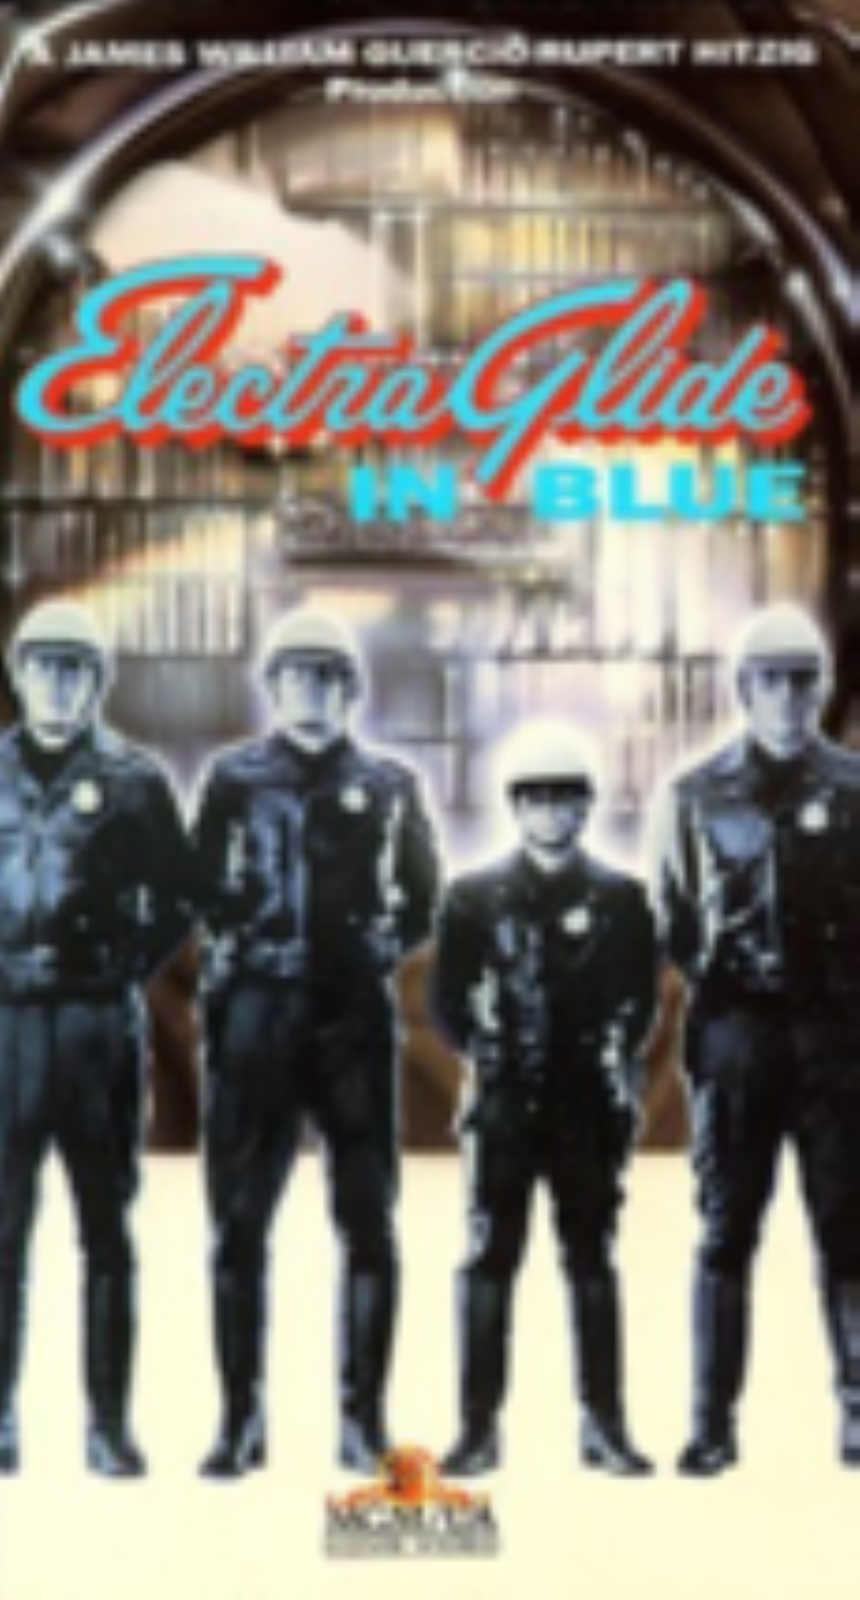 Electra Glide in Blue Vhs